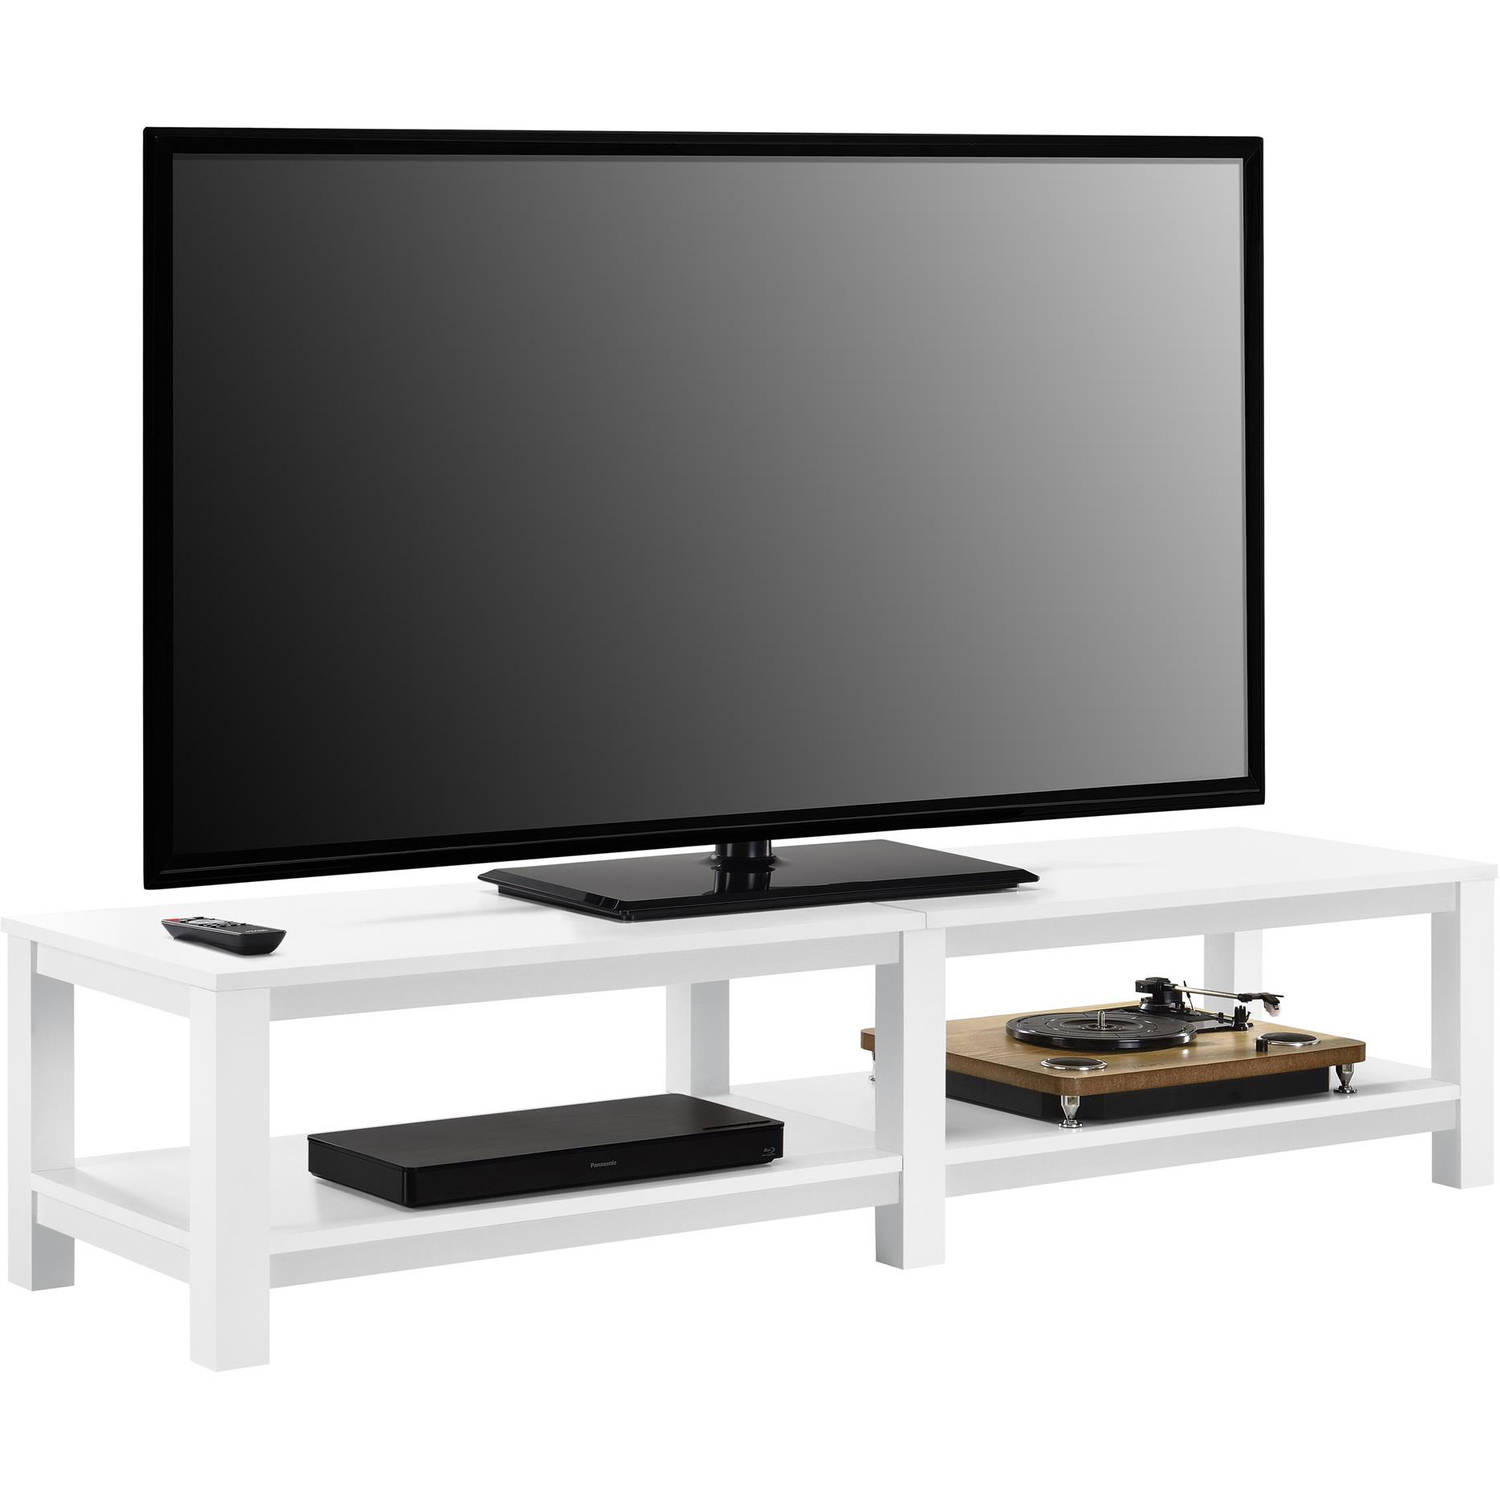 Mainstays Parsons Tv Up Tvs For Stand To 65